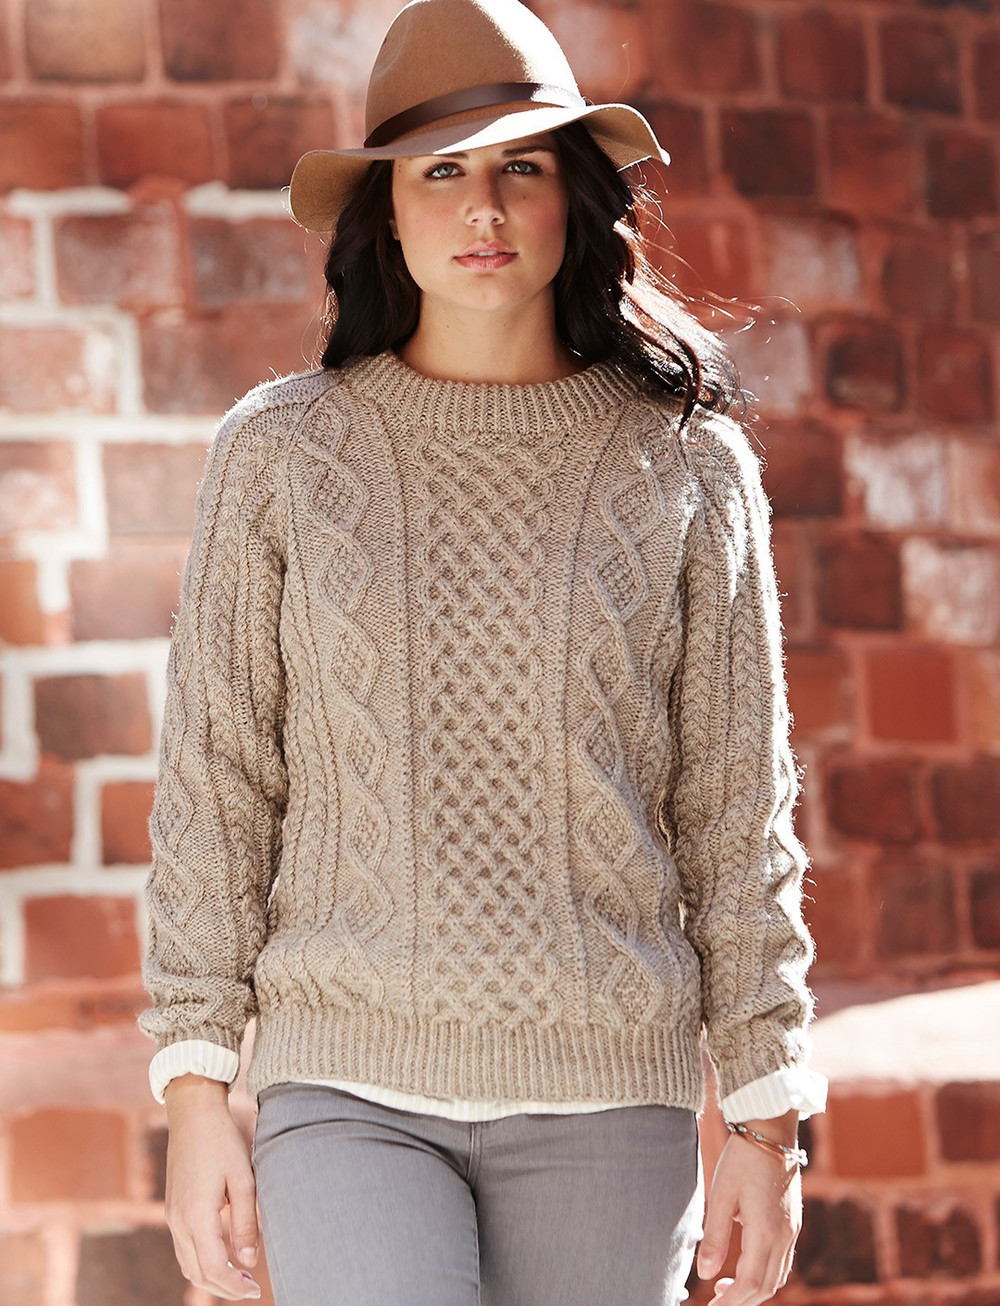 Aran Cardigan Knitting Patterns Free : Oats and Honeycomb Cabled Pullover AllFreeKnitting.com